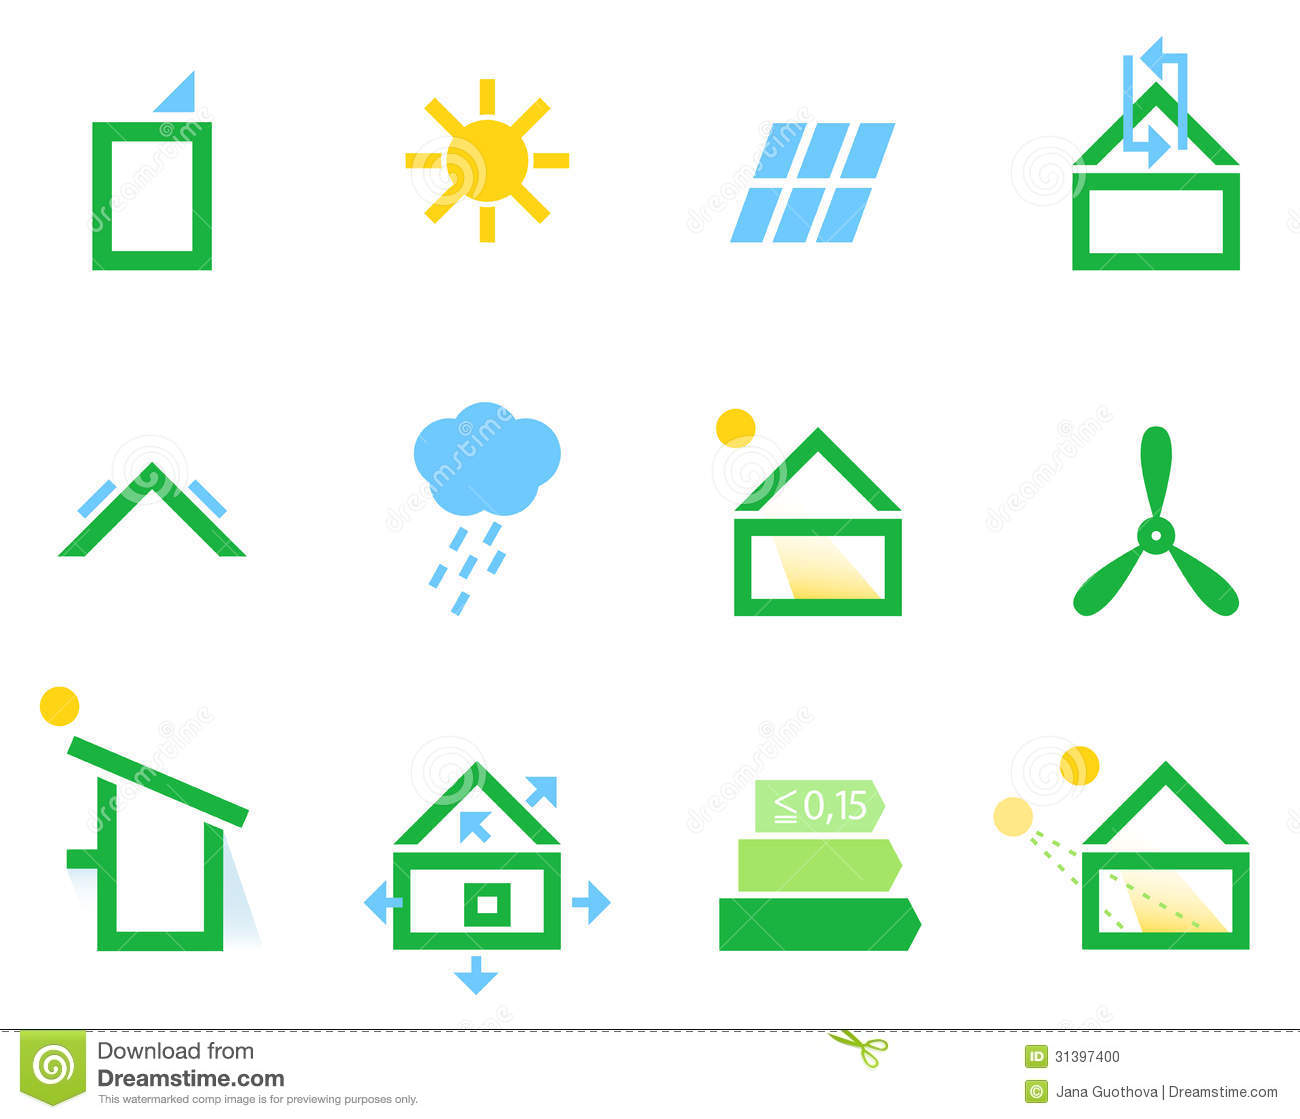 elements of energy efficient house We define it here as providing housing for people with methods, products and   and society when we design housing that is energy—and resource—efficient   or green, manner means addressing certain core elements during the stages of.